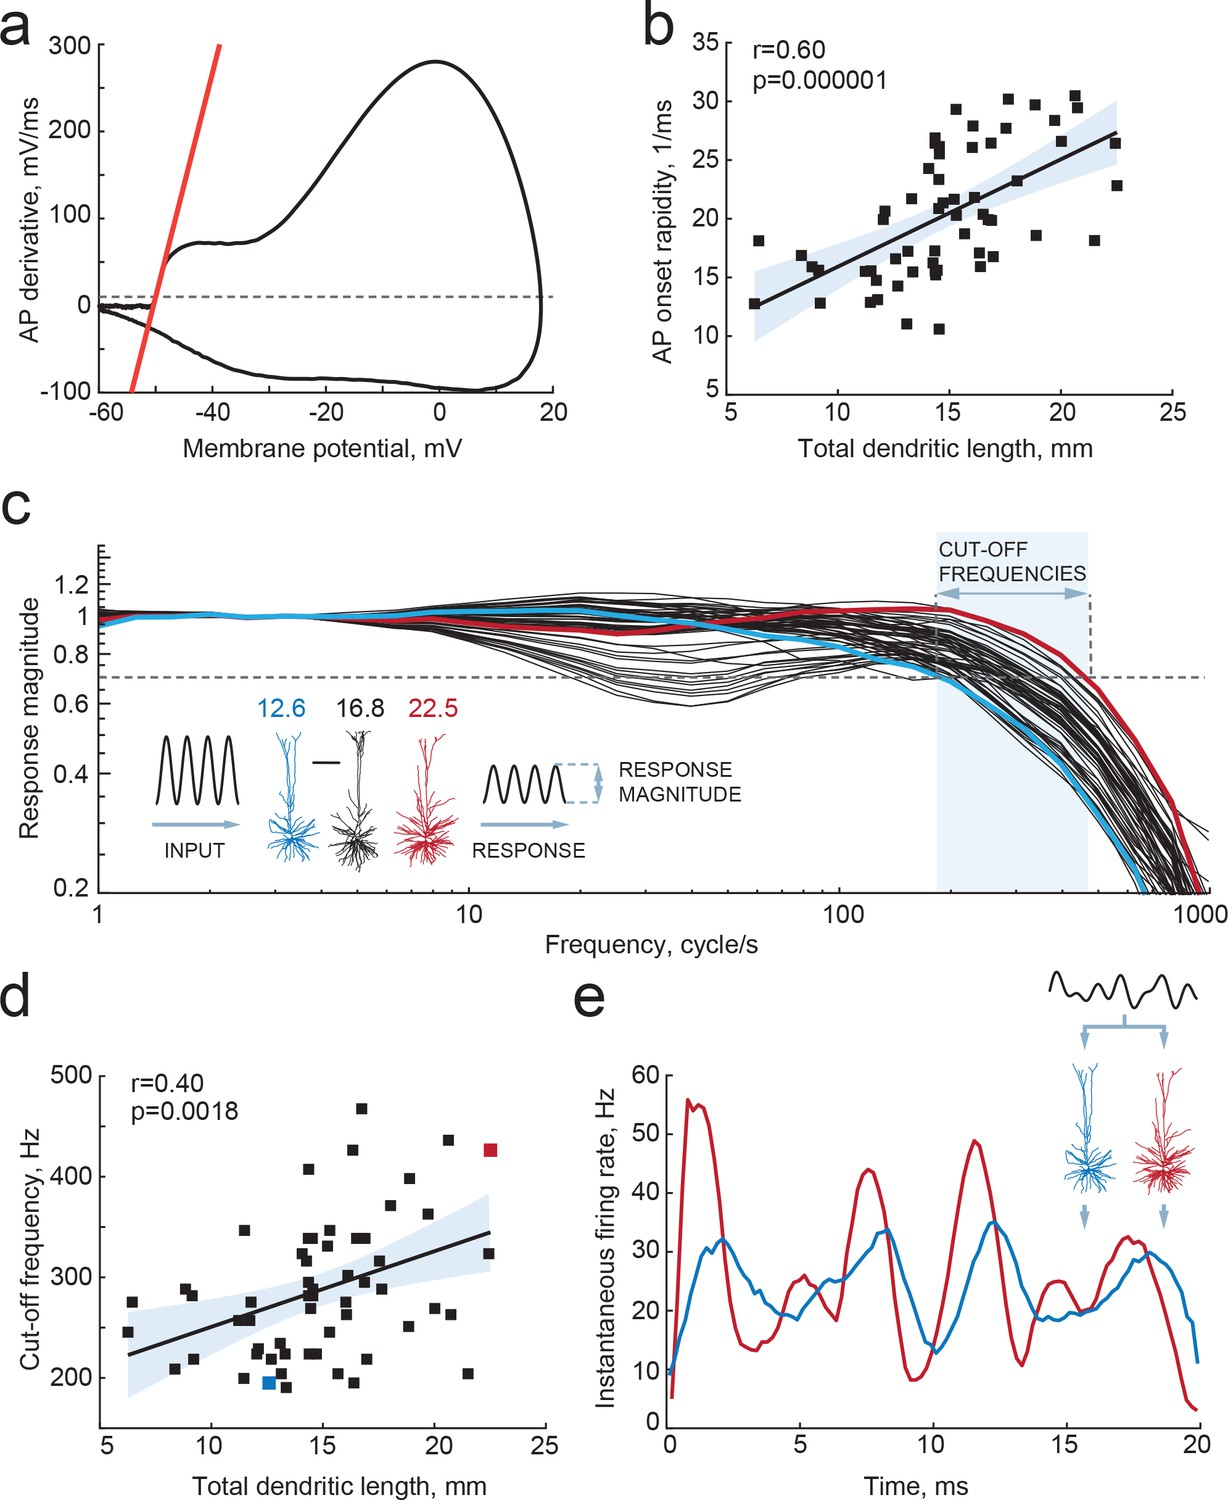 Large and fast human pyramidal neurons associate with intelligence